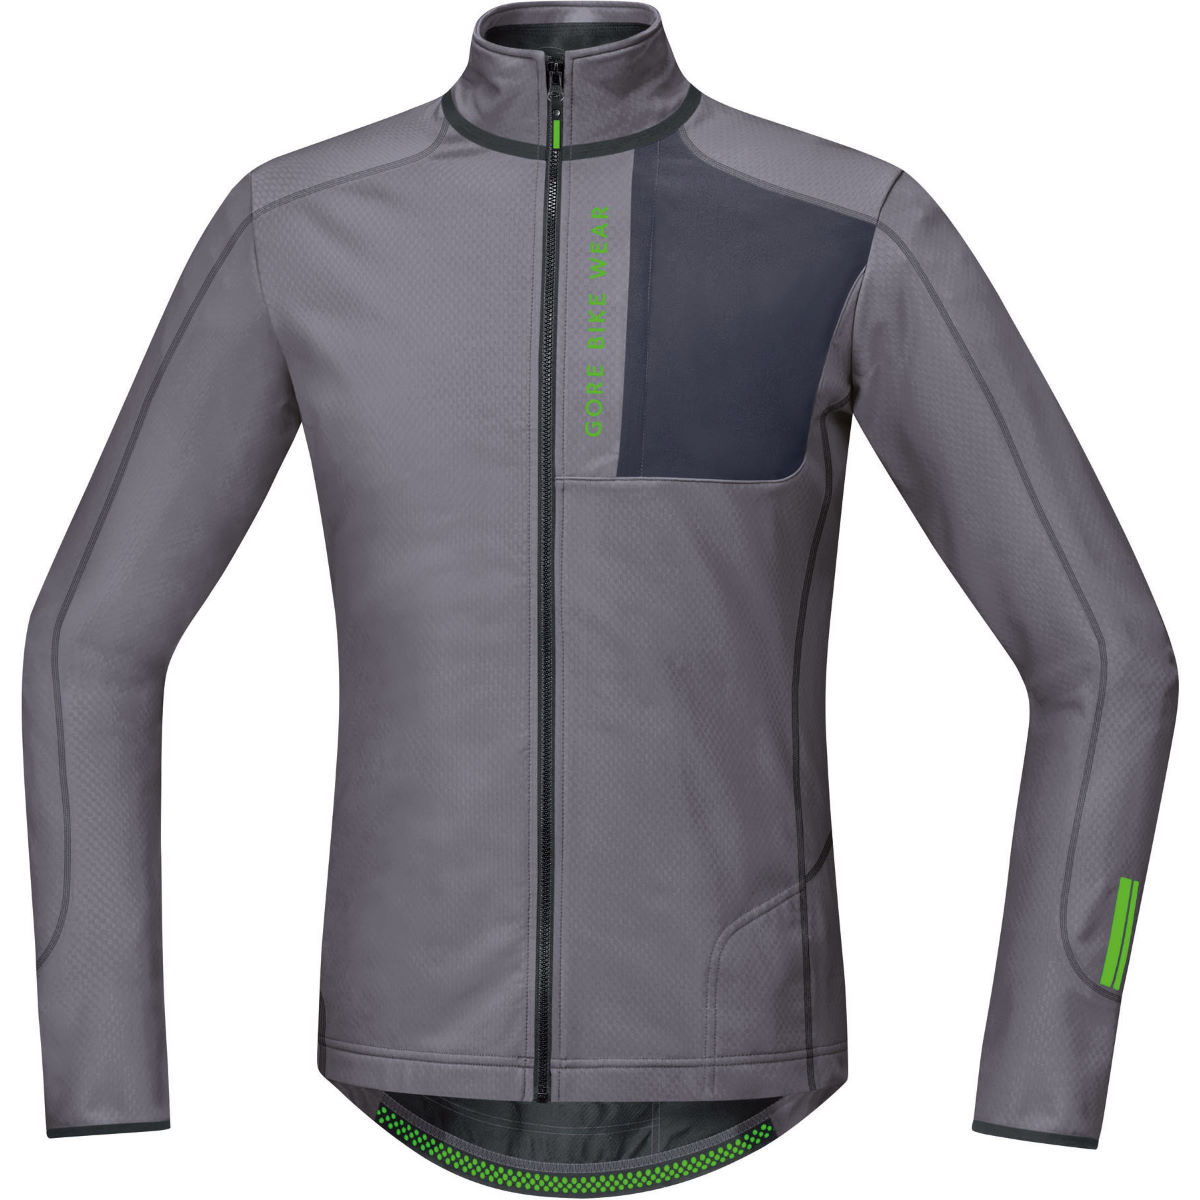 Maillot Gore Bike Wear Power Trail Thermo (manches longues) - S Asteroid Grey Maillots vélo à manches longues